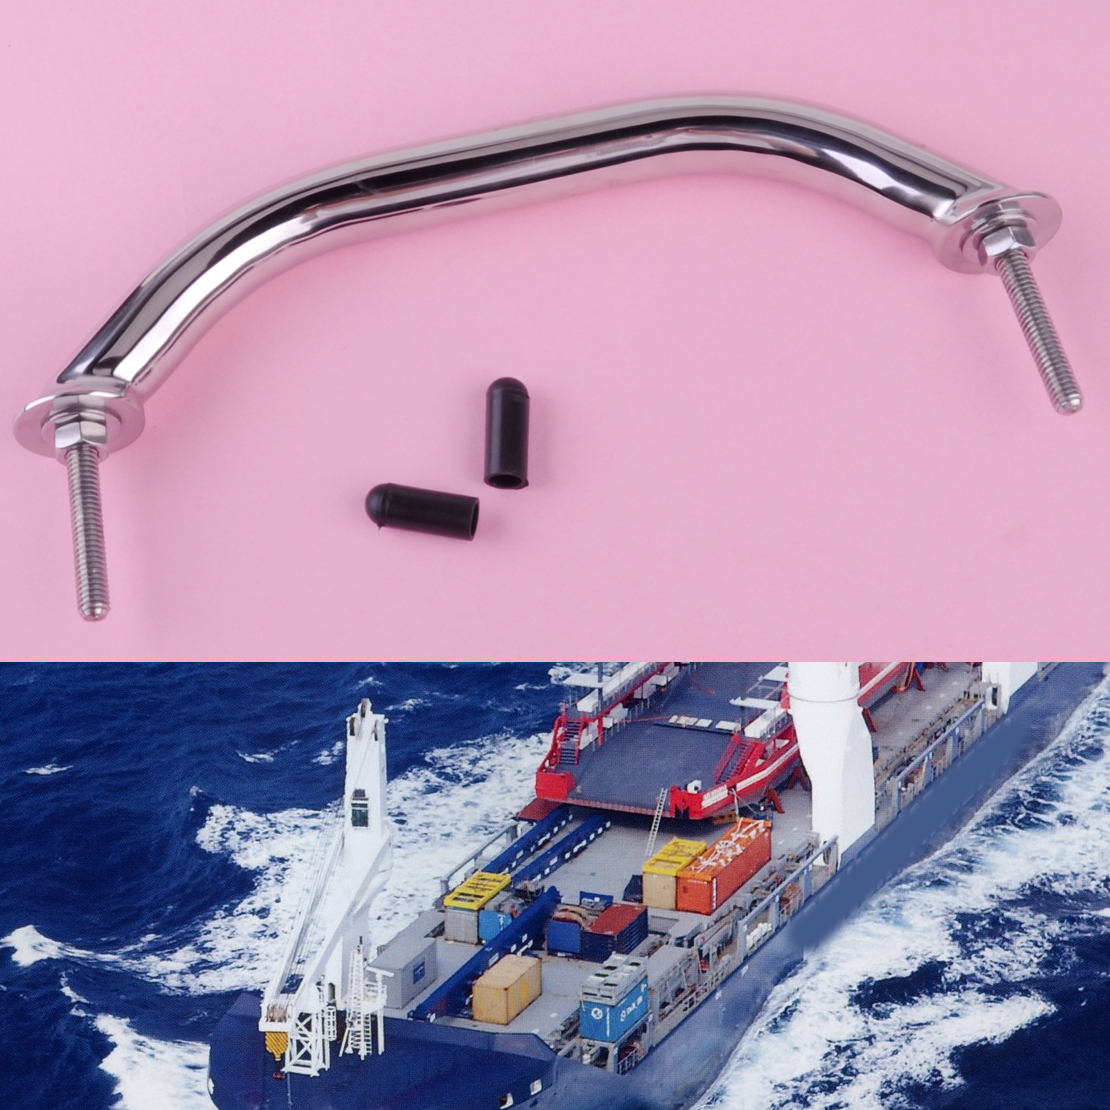 DWCX 9 inch Great Stainless Steel Polished Boat Handle Durable Grab Hardware Replacement for Boat Marine Bimini Top Yacht Ship